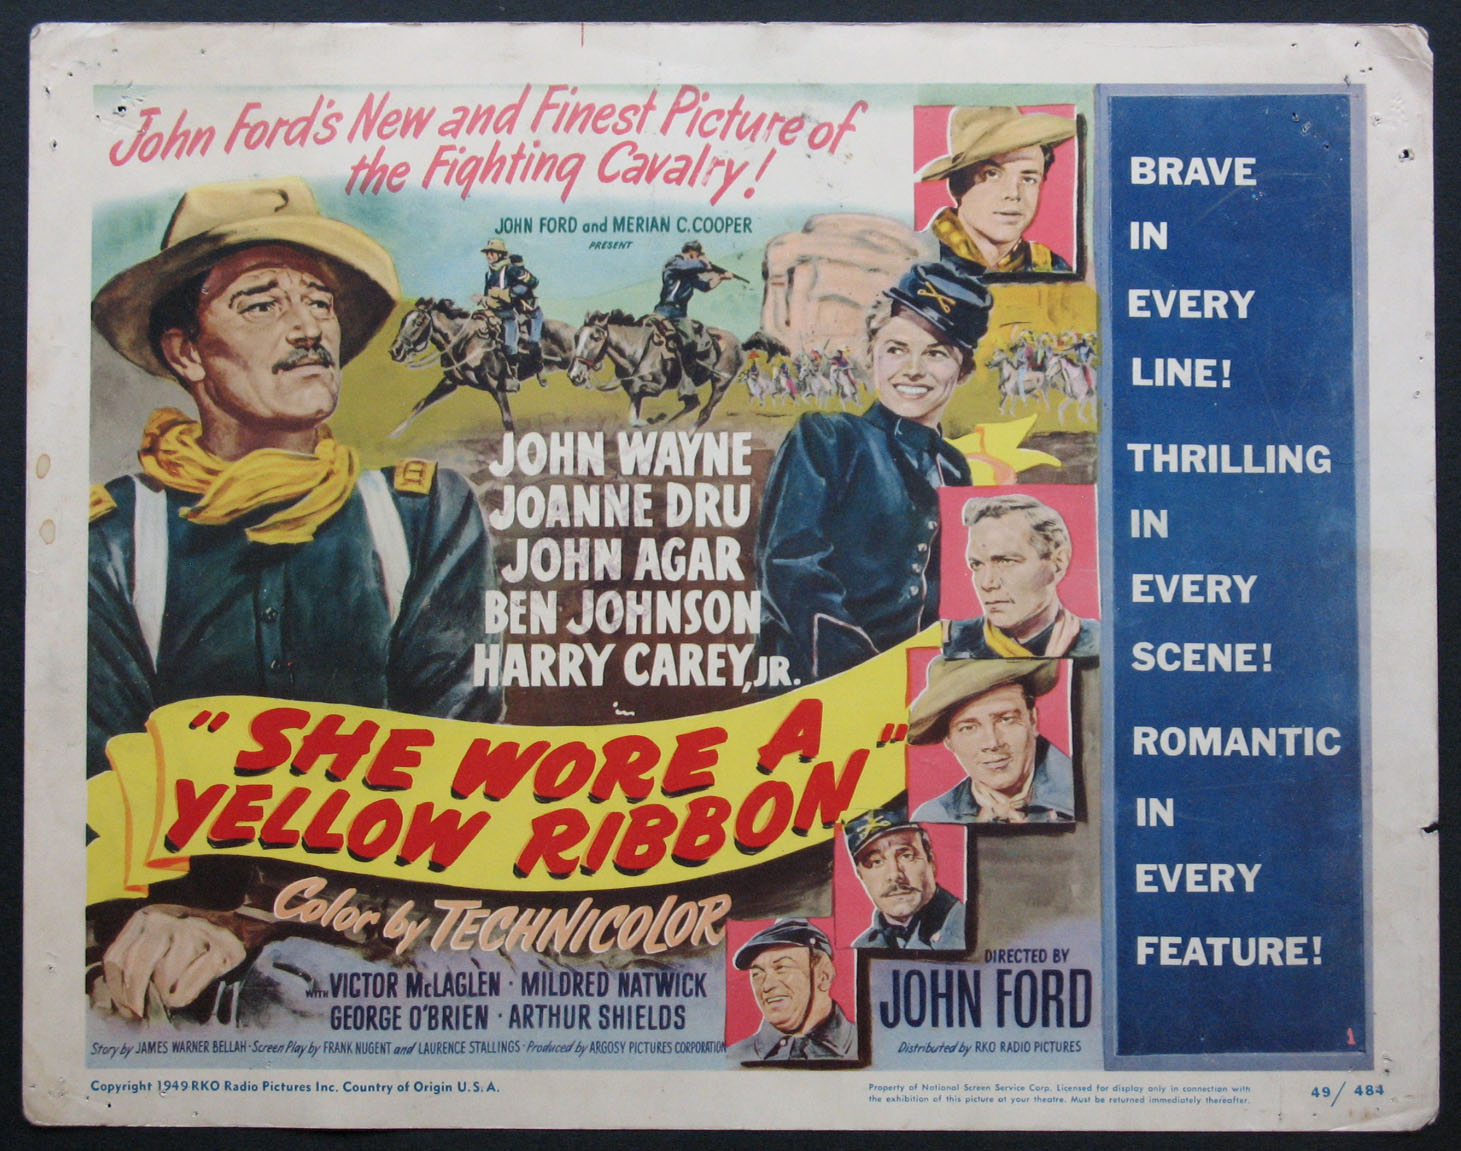 SHE WORE A YELLOW RIBBON @ FilmPosters.com